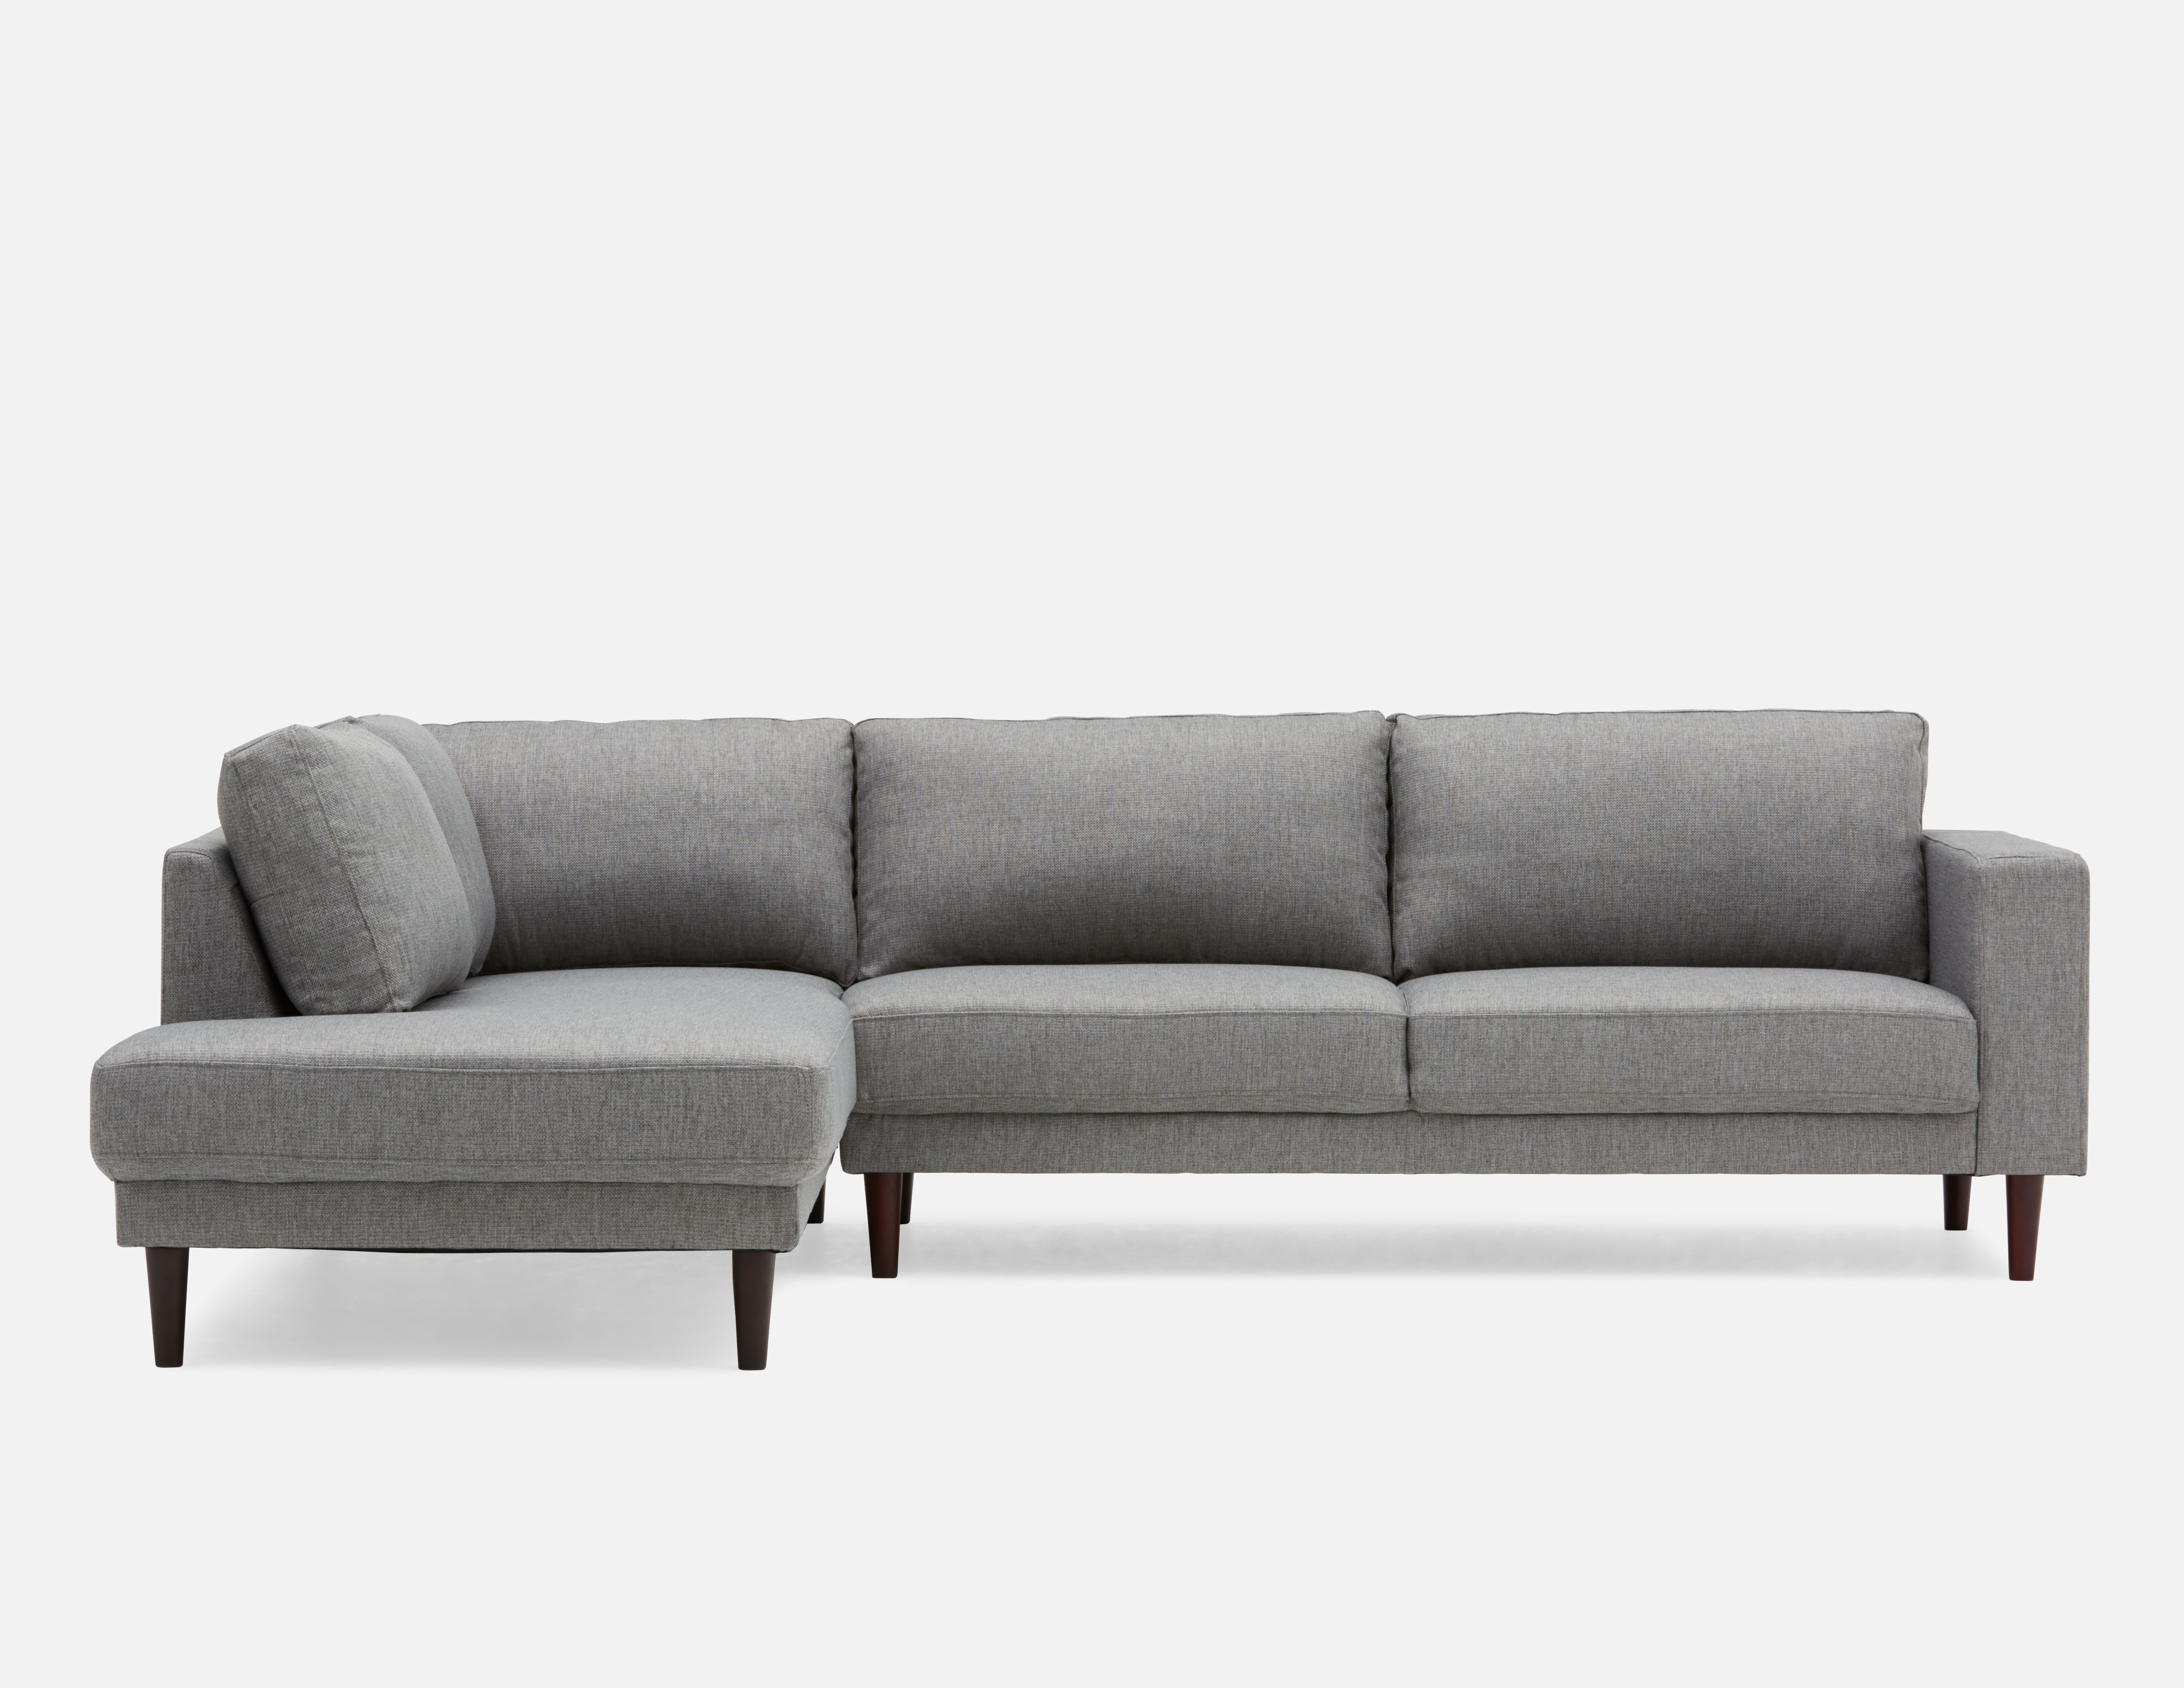 Campbell Grey Left Facing Sectional Sofa In 2019 Grey Sectional Sofa Sectional Sofa Sofa